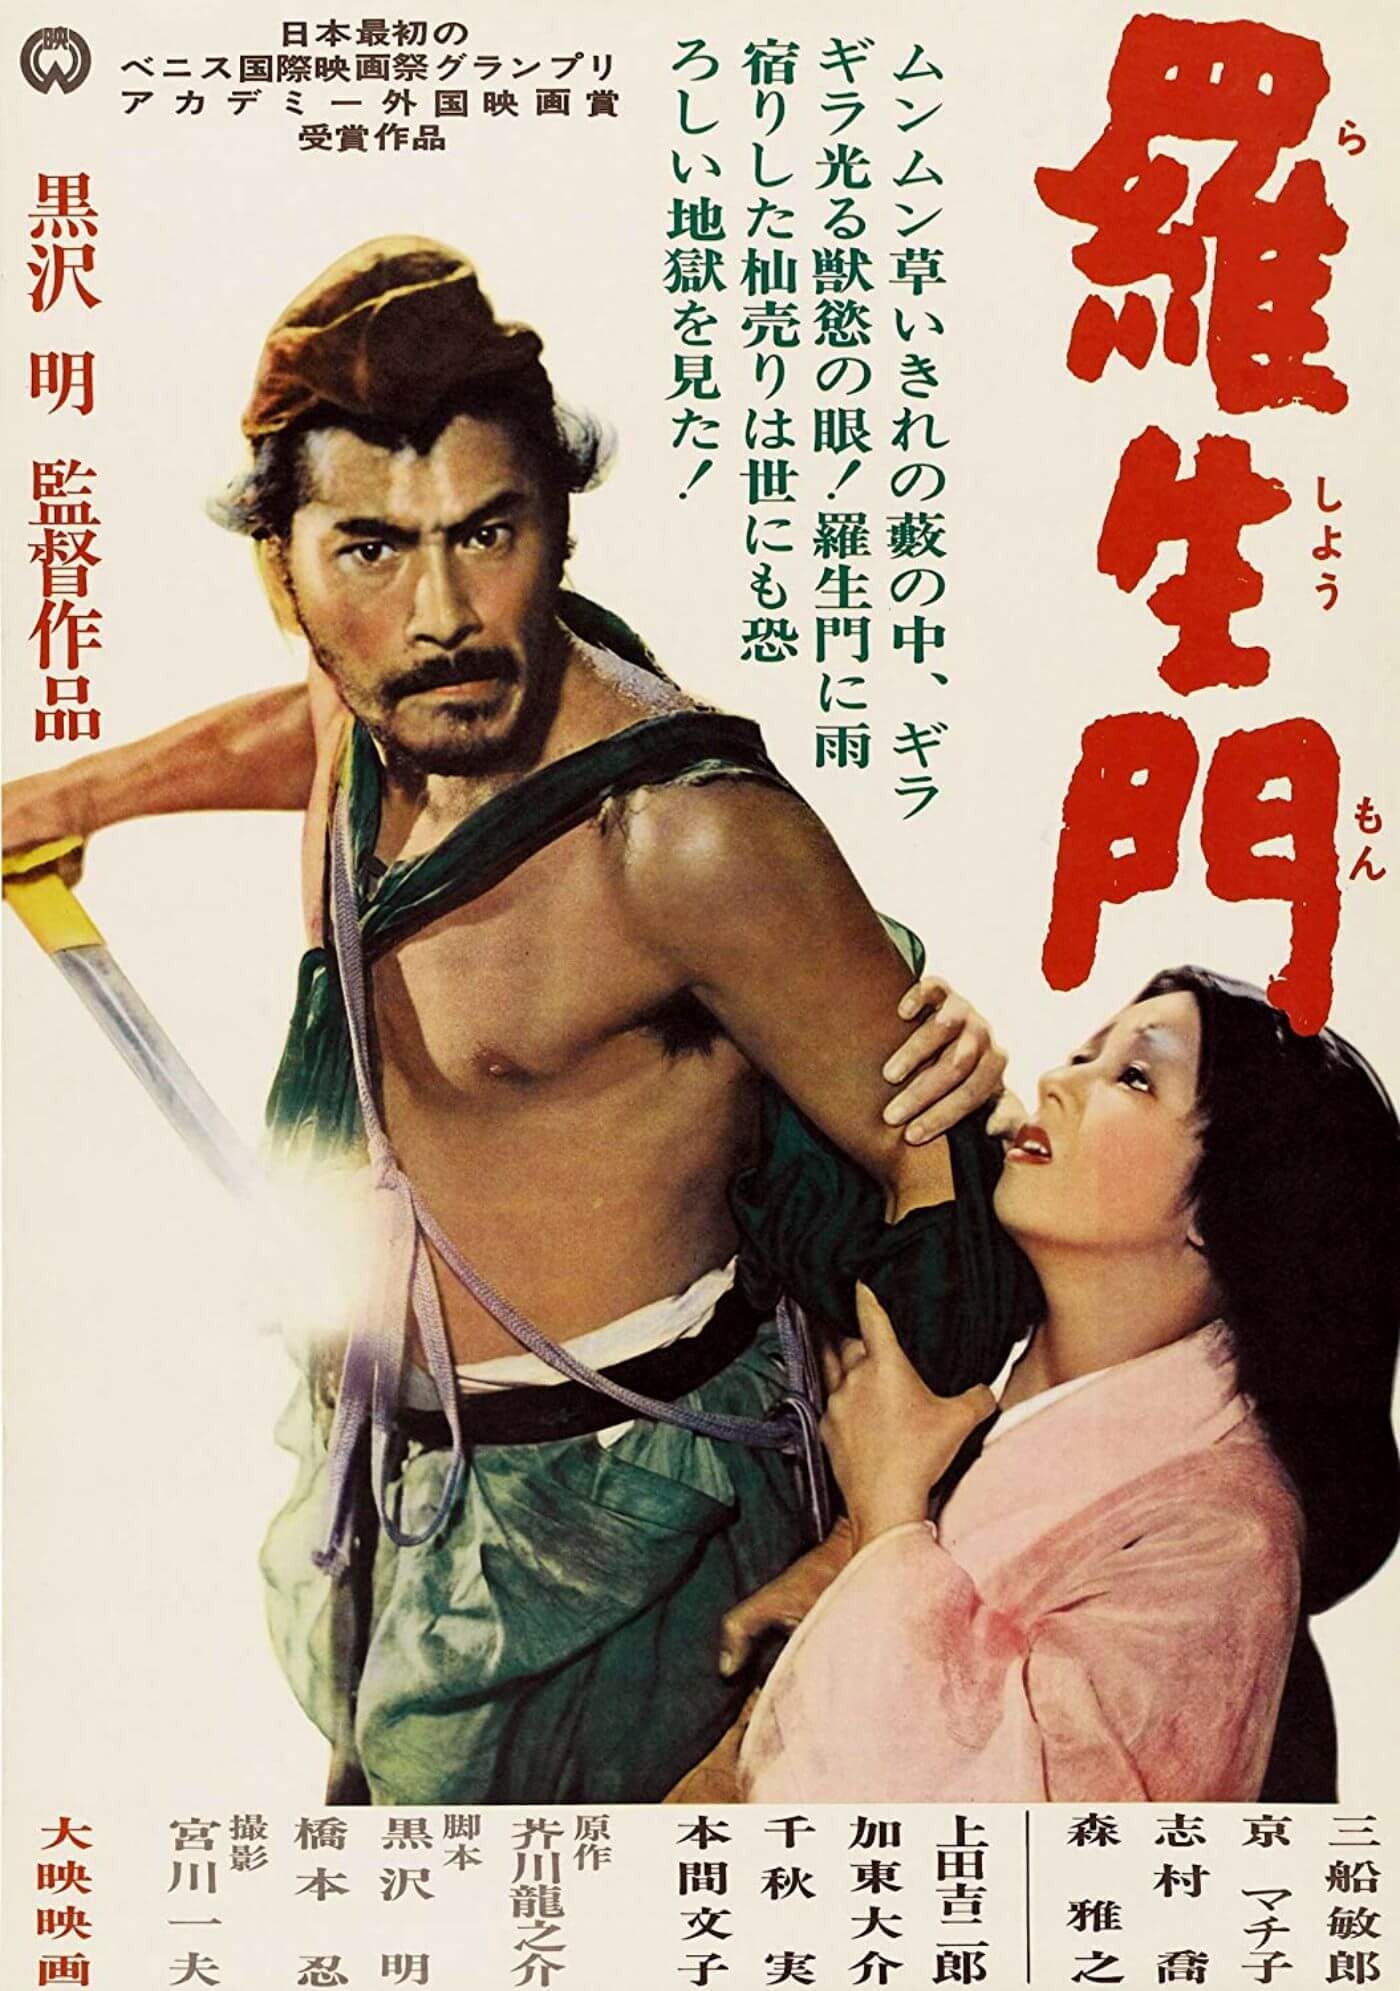 Rashomon -  Akira Kurosawa 1960 Japanese Cinema Masterpiece - Classic Movie Original Release Art Poster - Framed Prints